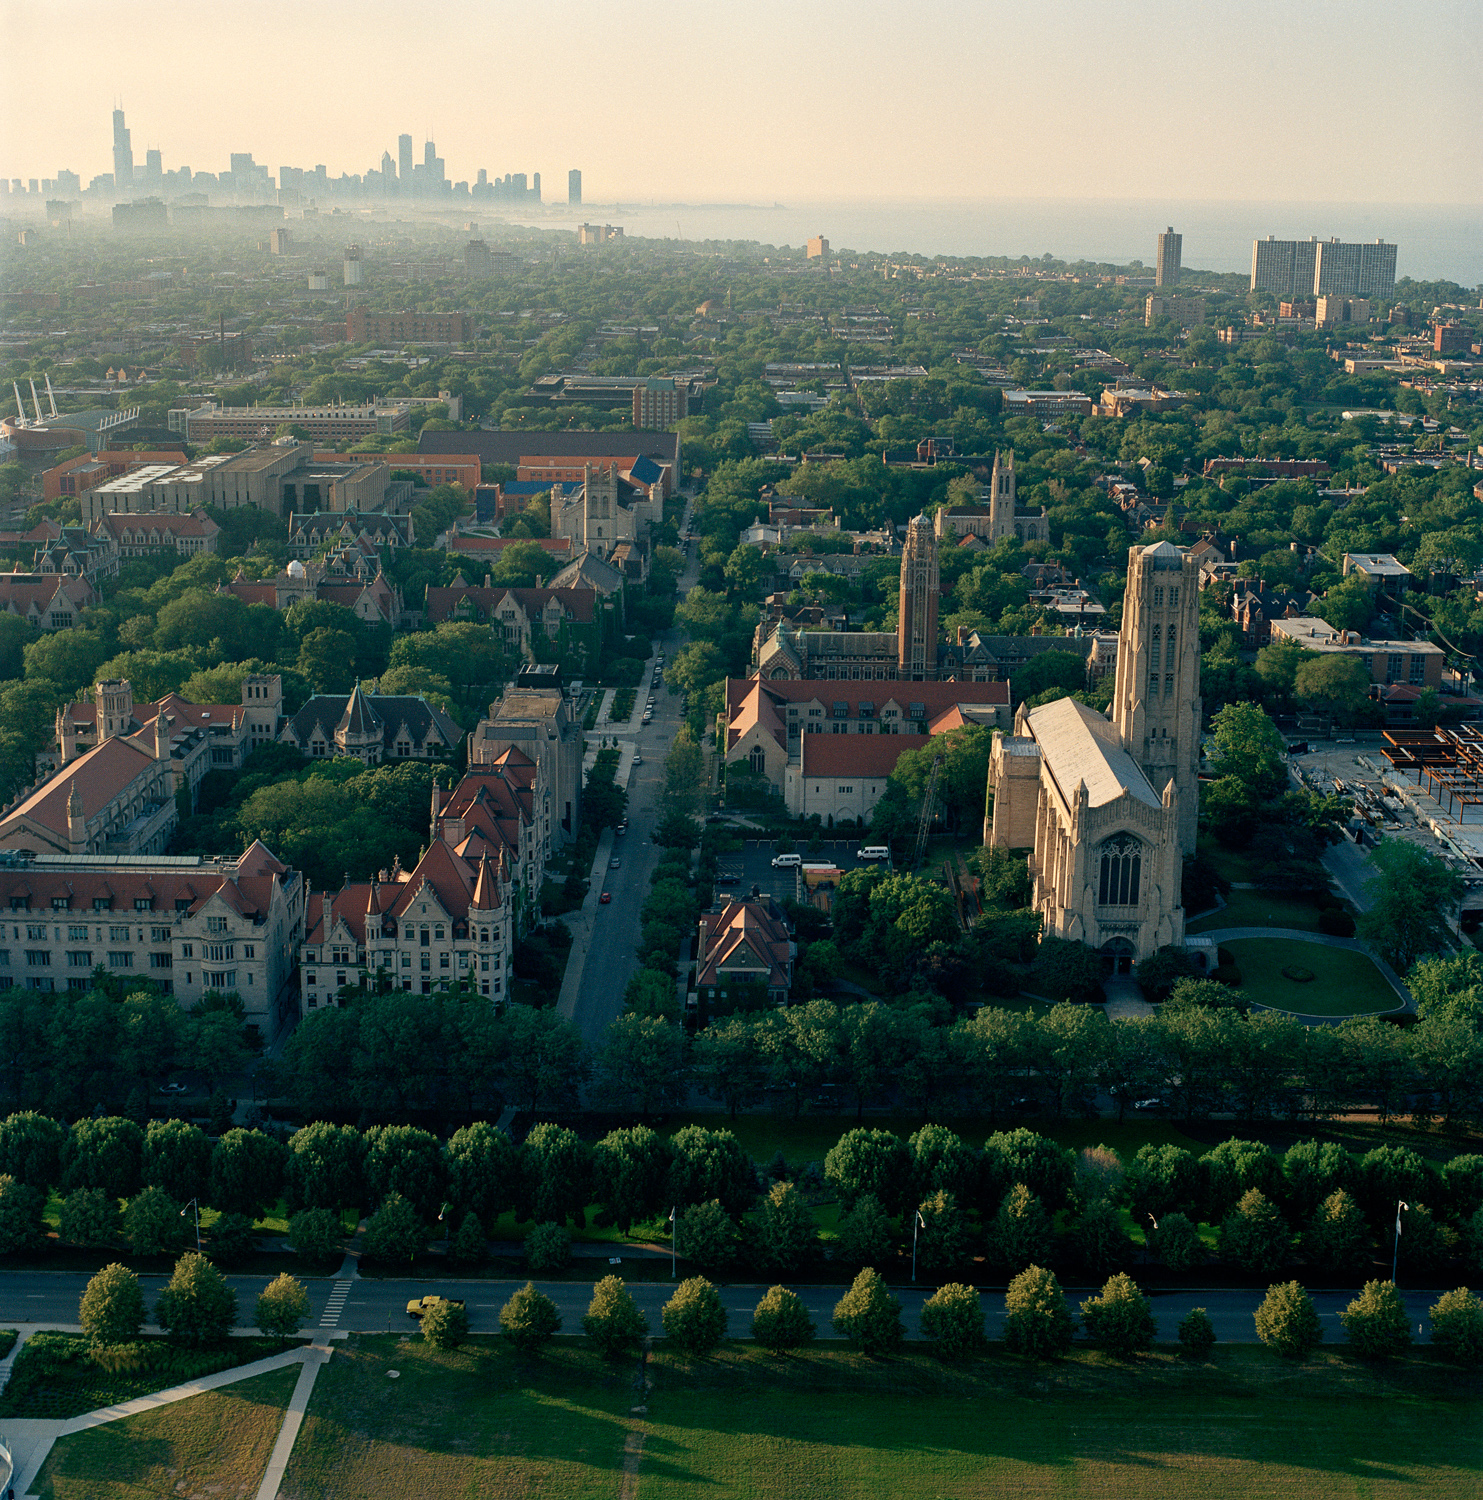 30-36.7_05_03.University-of-Chicago.jpg